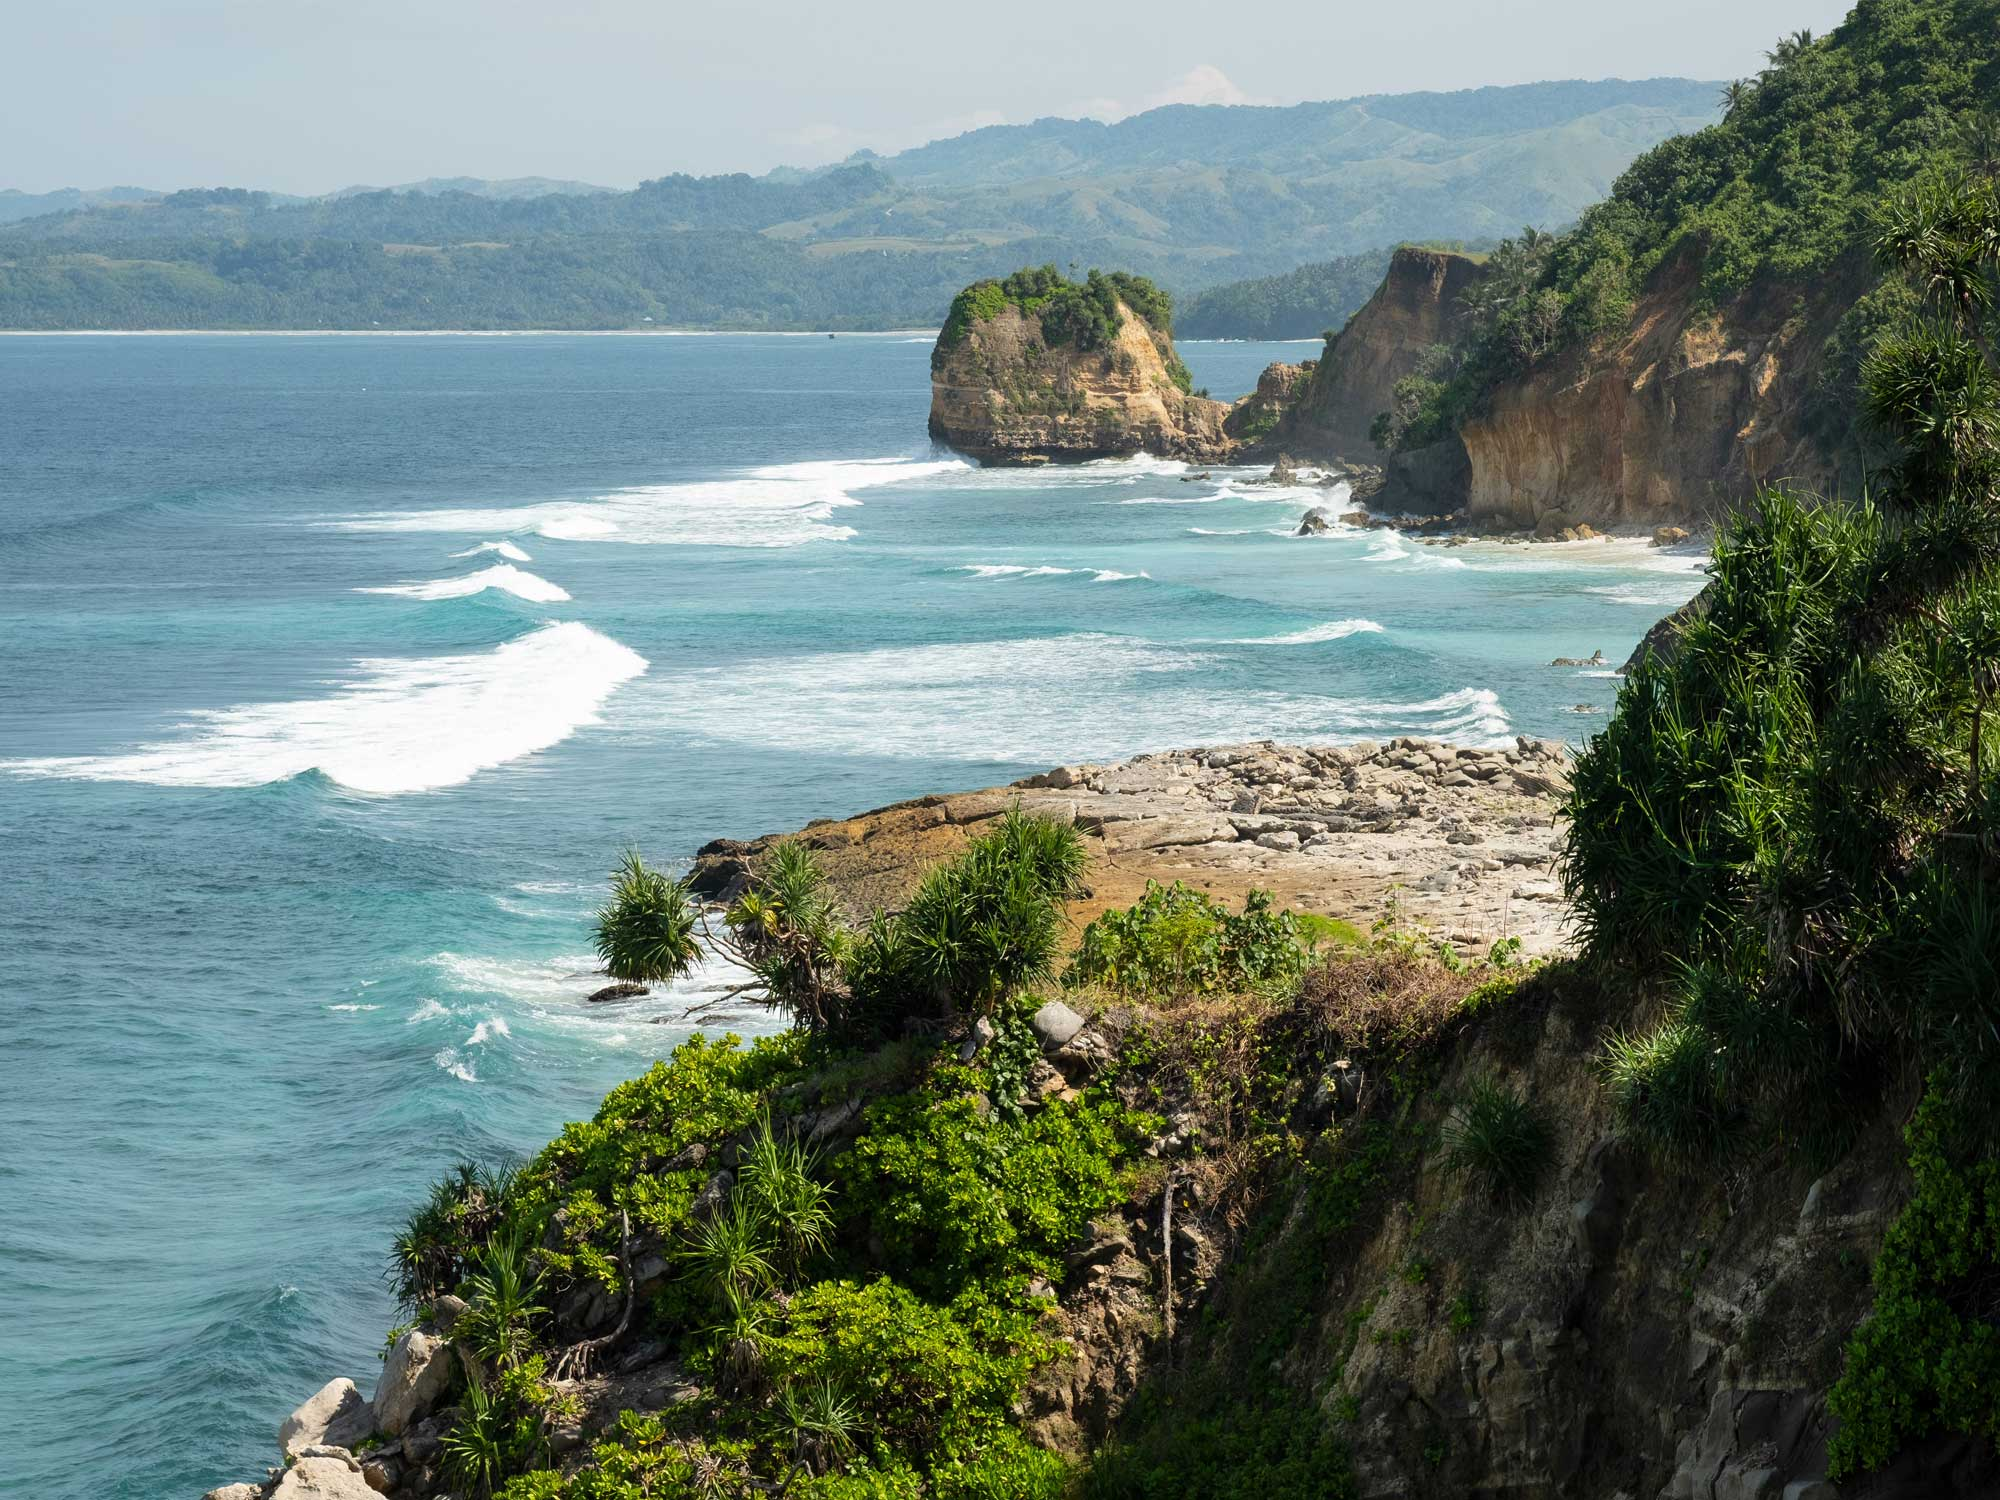 Lelewatu Sumba - How to Get There